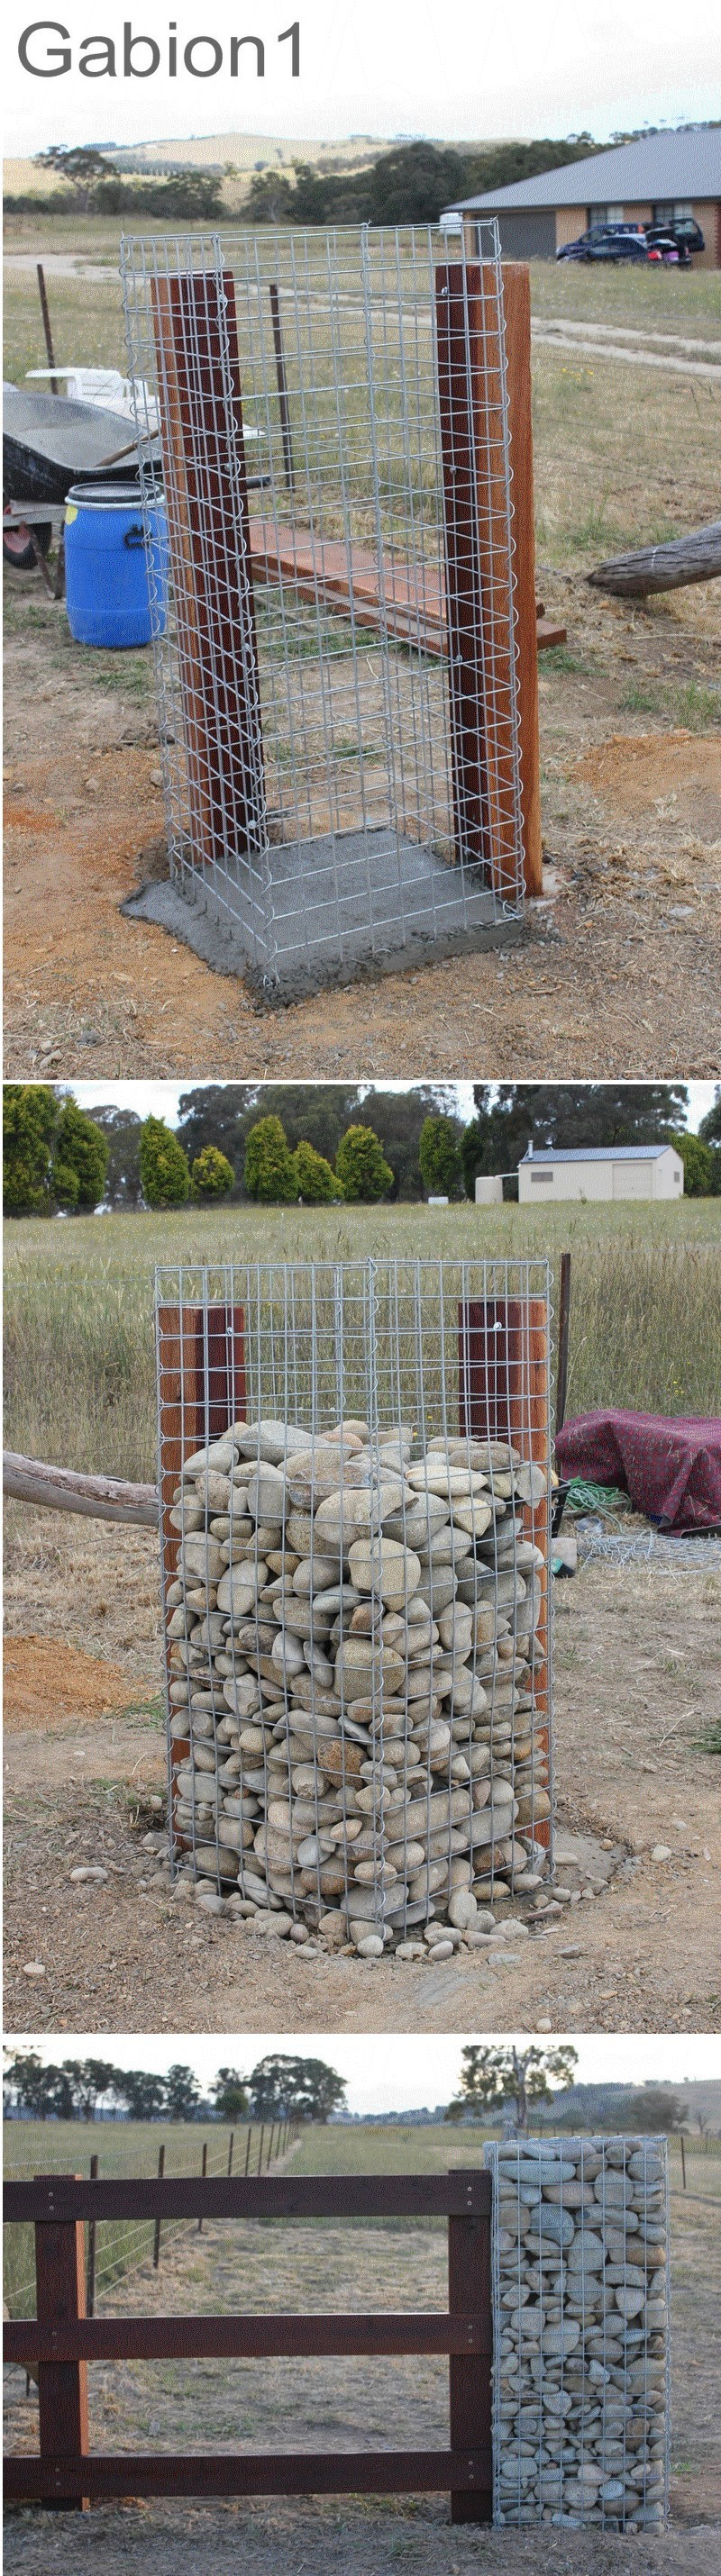 gabion gate post example